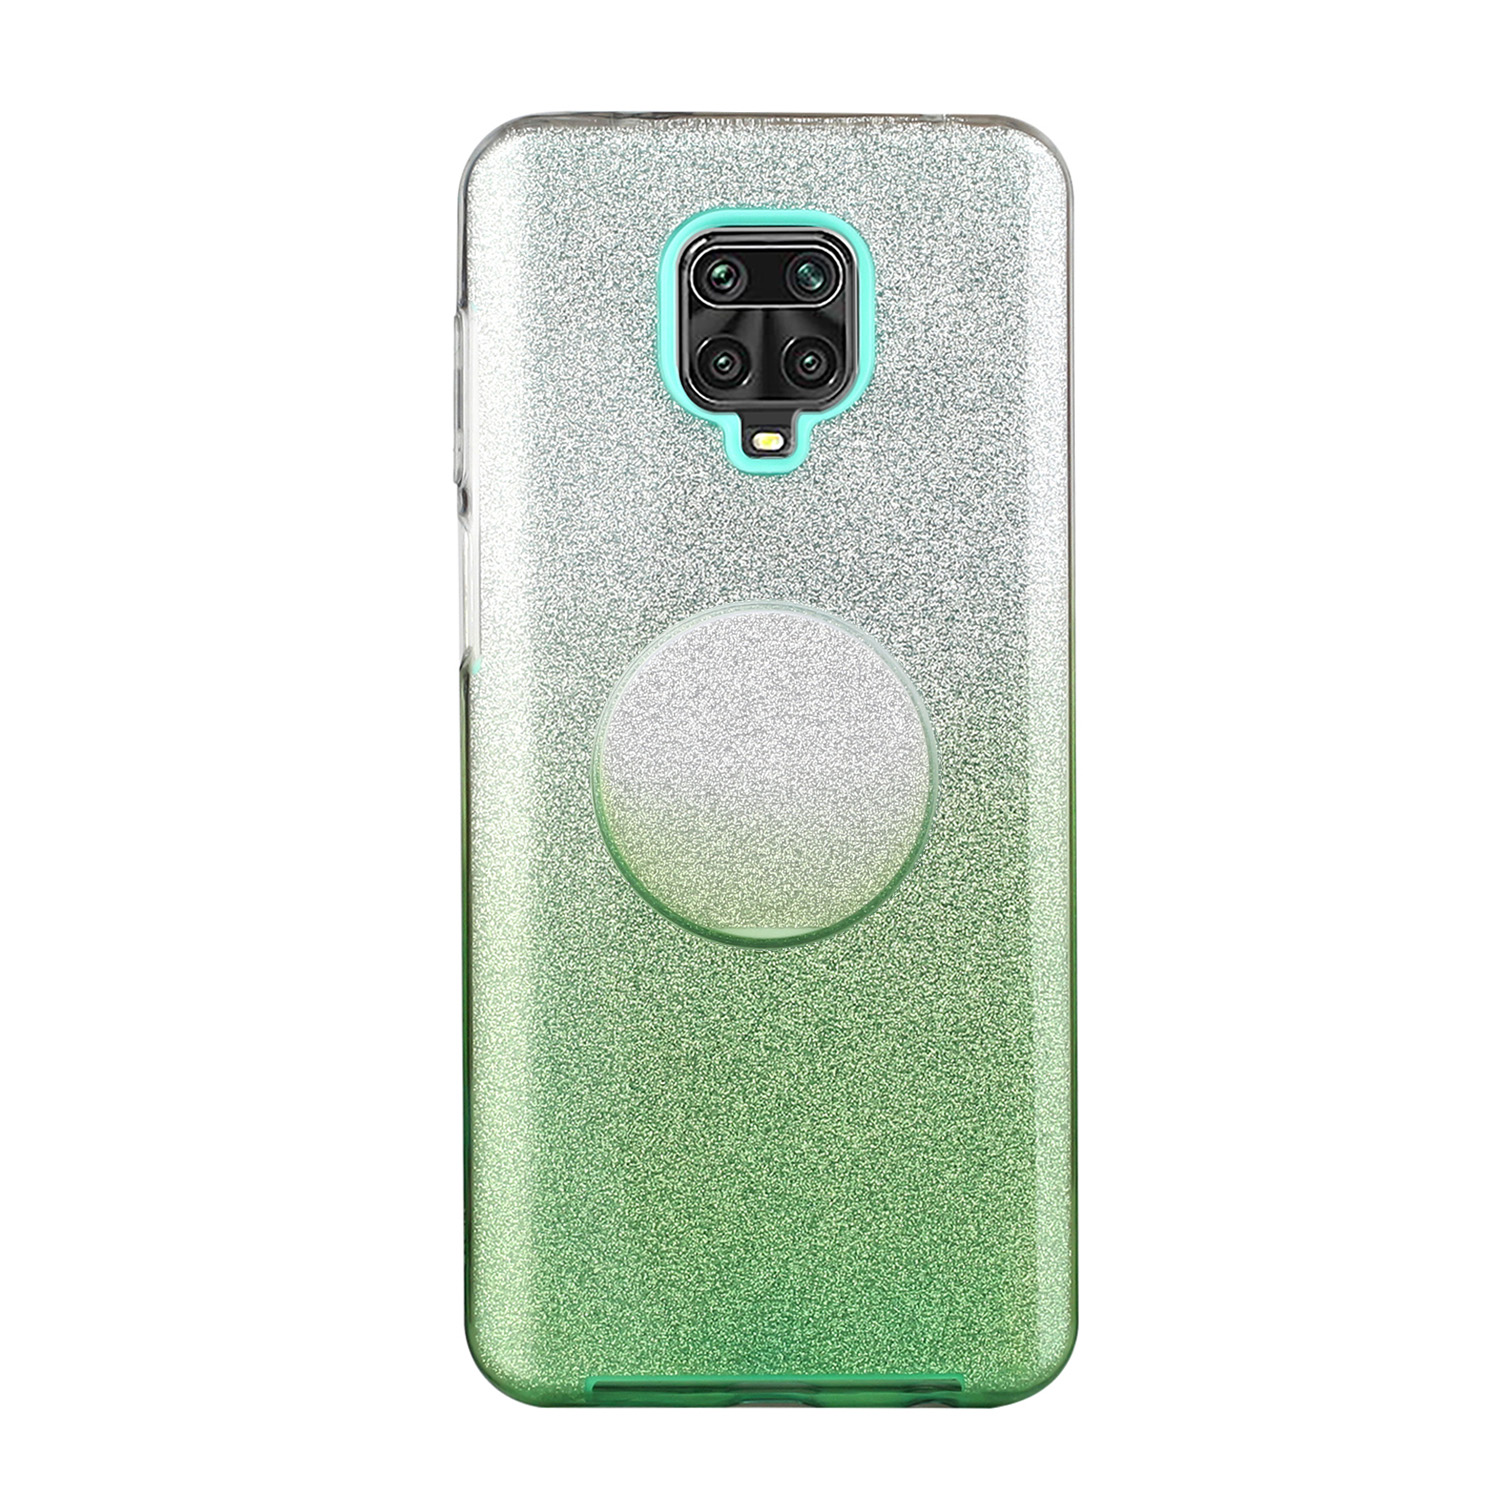 For XIAOMI CC9E/A3/10/10 PRO/K20/K20 pro Phone Case Gradient Color Glitter Powder Phone Cover with Airbag Bracket green